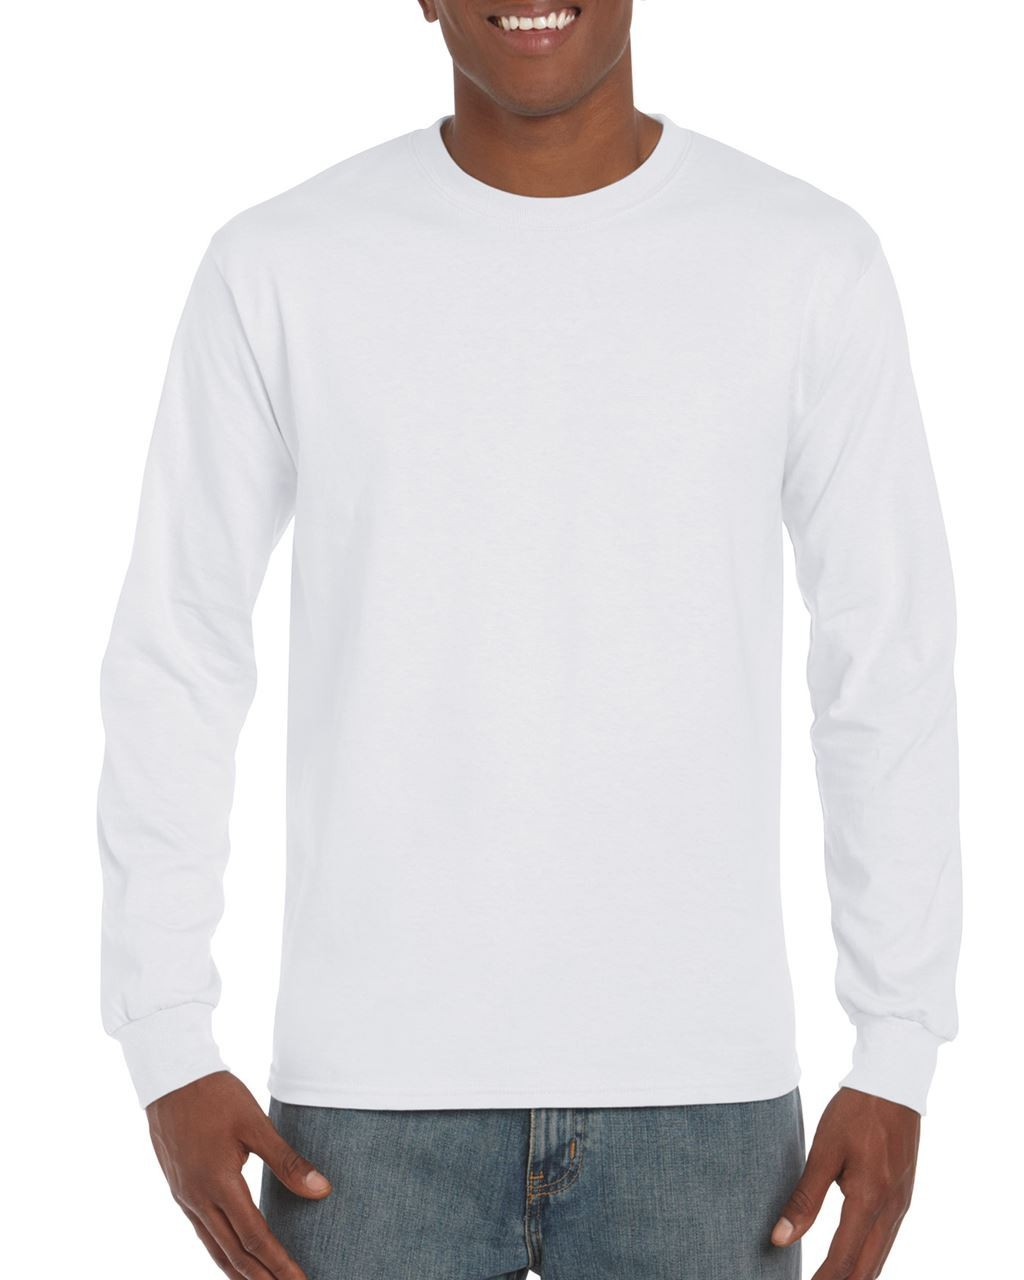 2cd361f8d Gildan Ultra Cotton Adult Long Sleeve T-shirt, White, M (long.sleeve ...